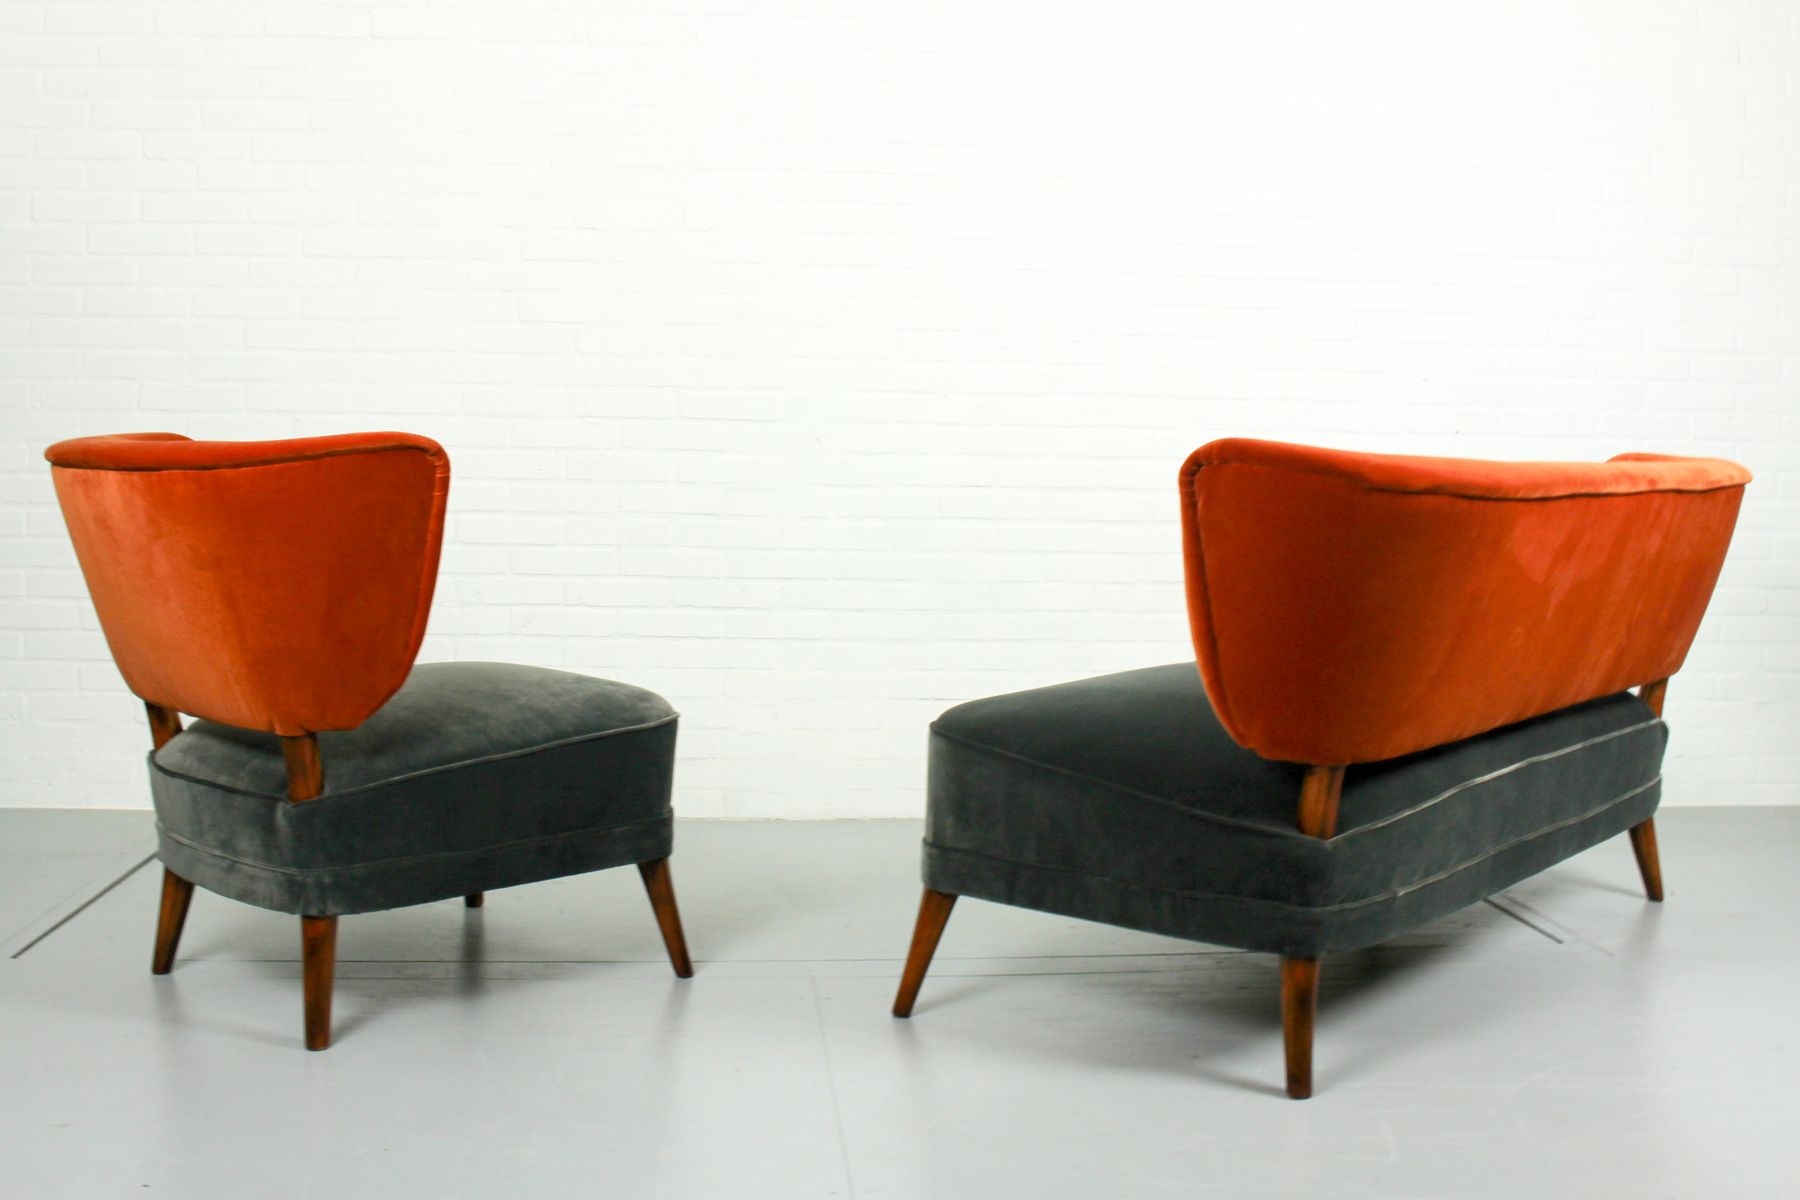 Vintage Velvet Cocktail Chair And Matching Sofa 1950s Set Of 2 For Sale At Pamono